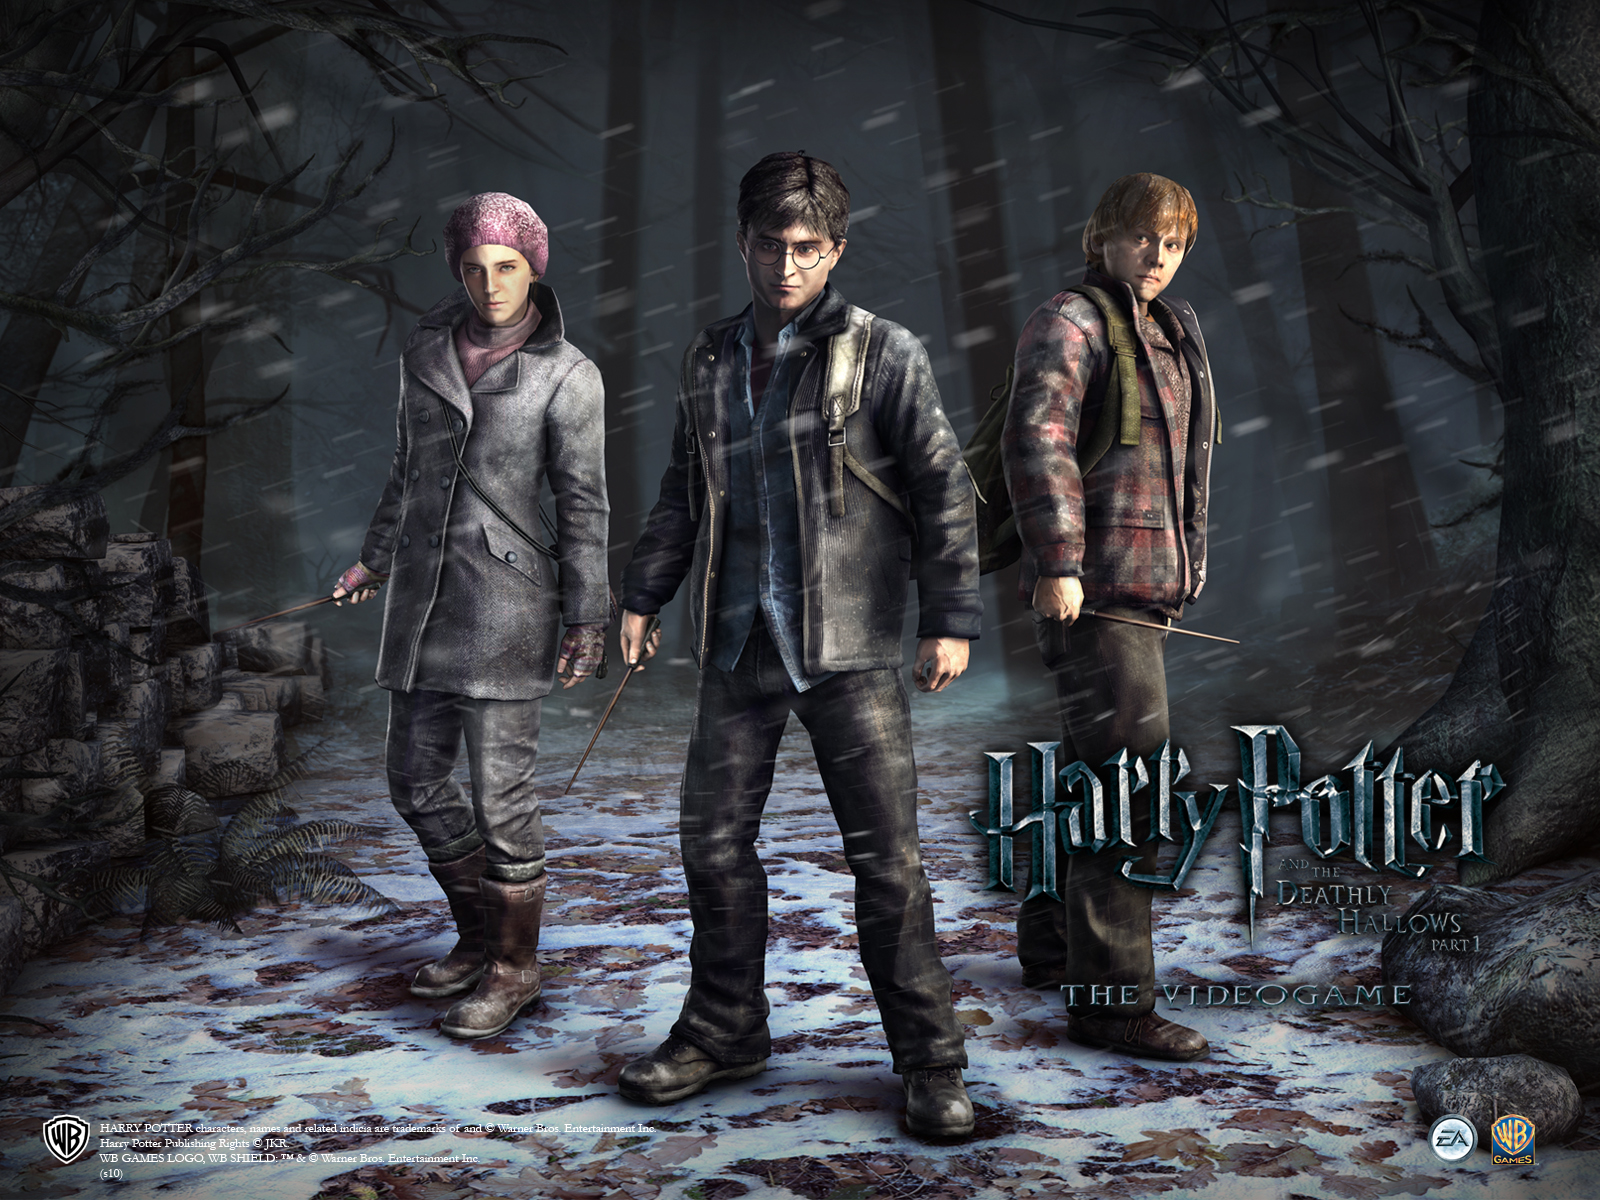 Cool Wallpaper Harry Potter Snow - harry-potter-and-the-deathly-hallows-part-1-videogame-big  Pic_1007024.jpg